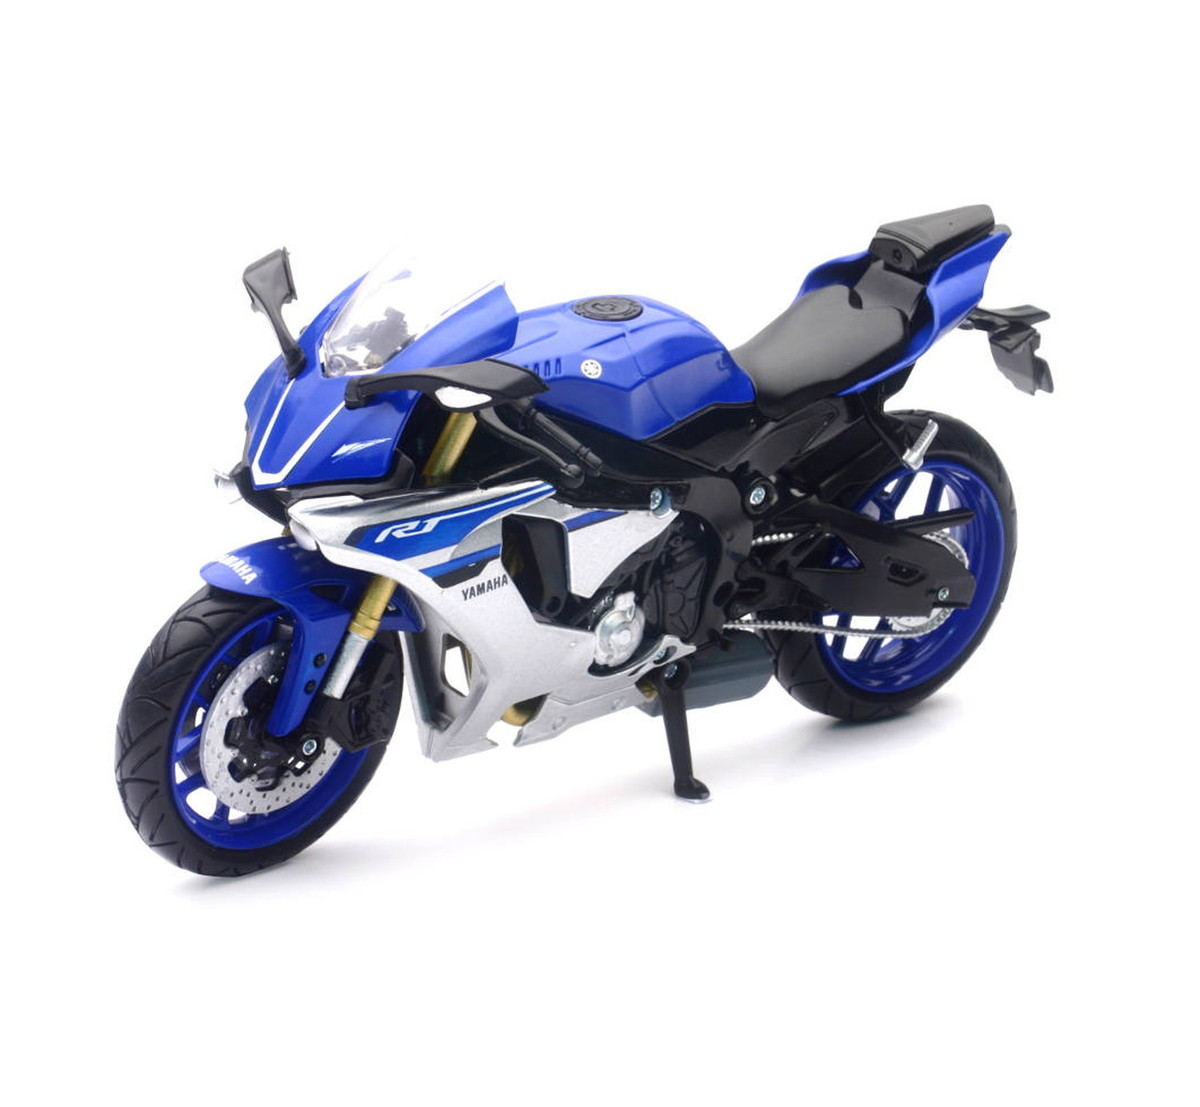 New Lei Yamaha 1 12 Motorcycle Yzf R1 Y Z F Are One Blue Blue New Lei Newray Yamaha Blue